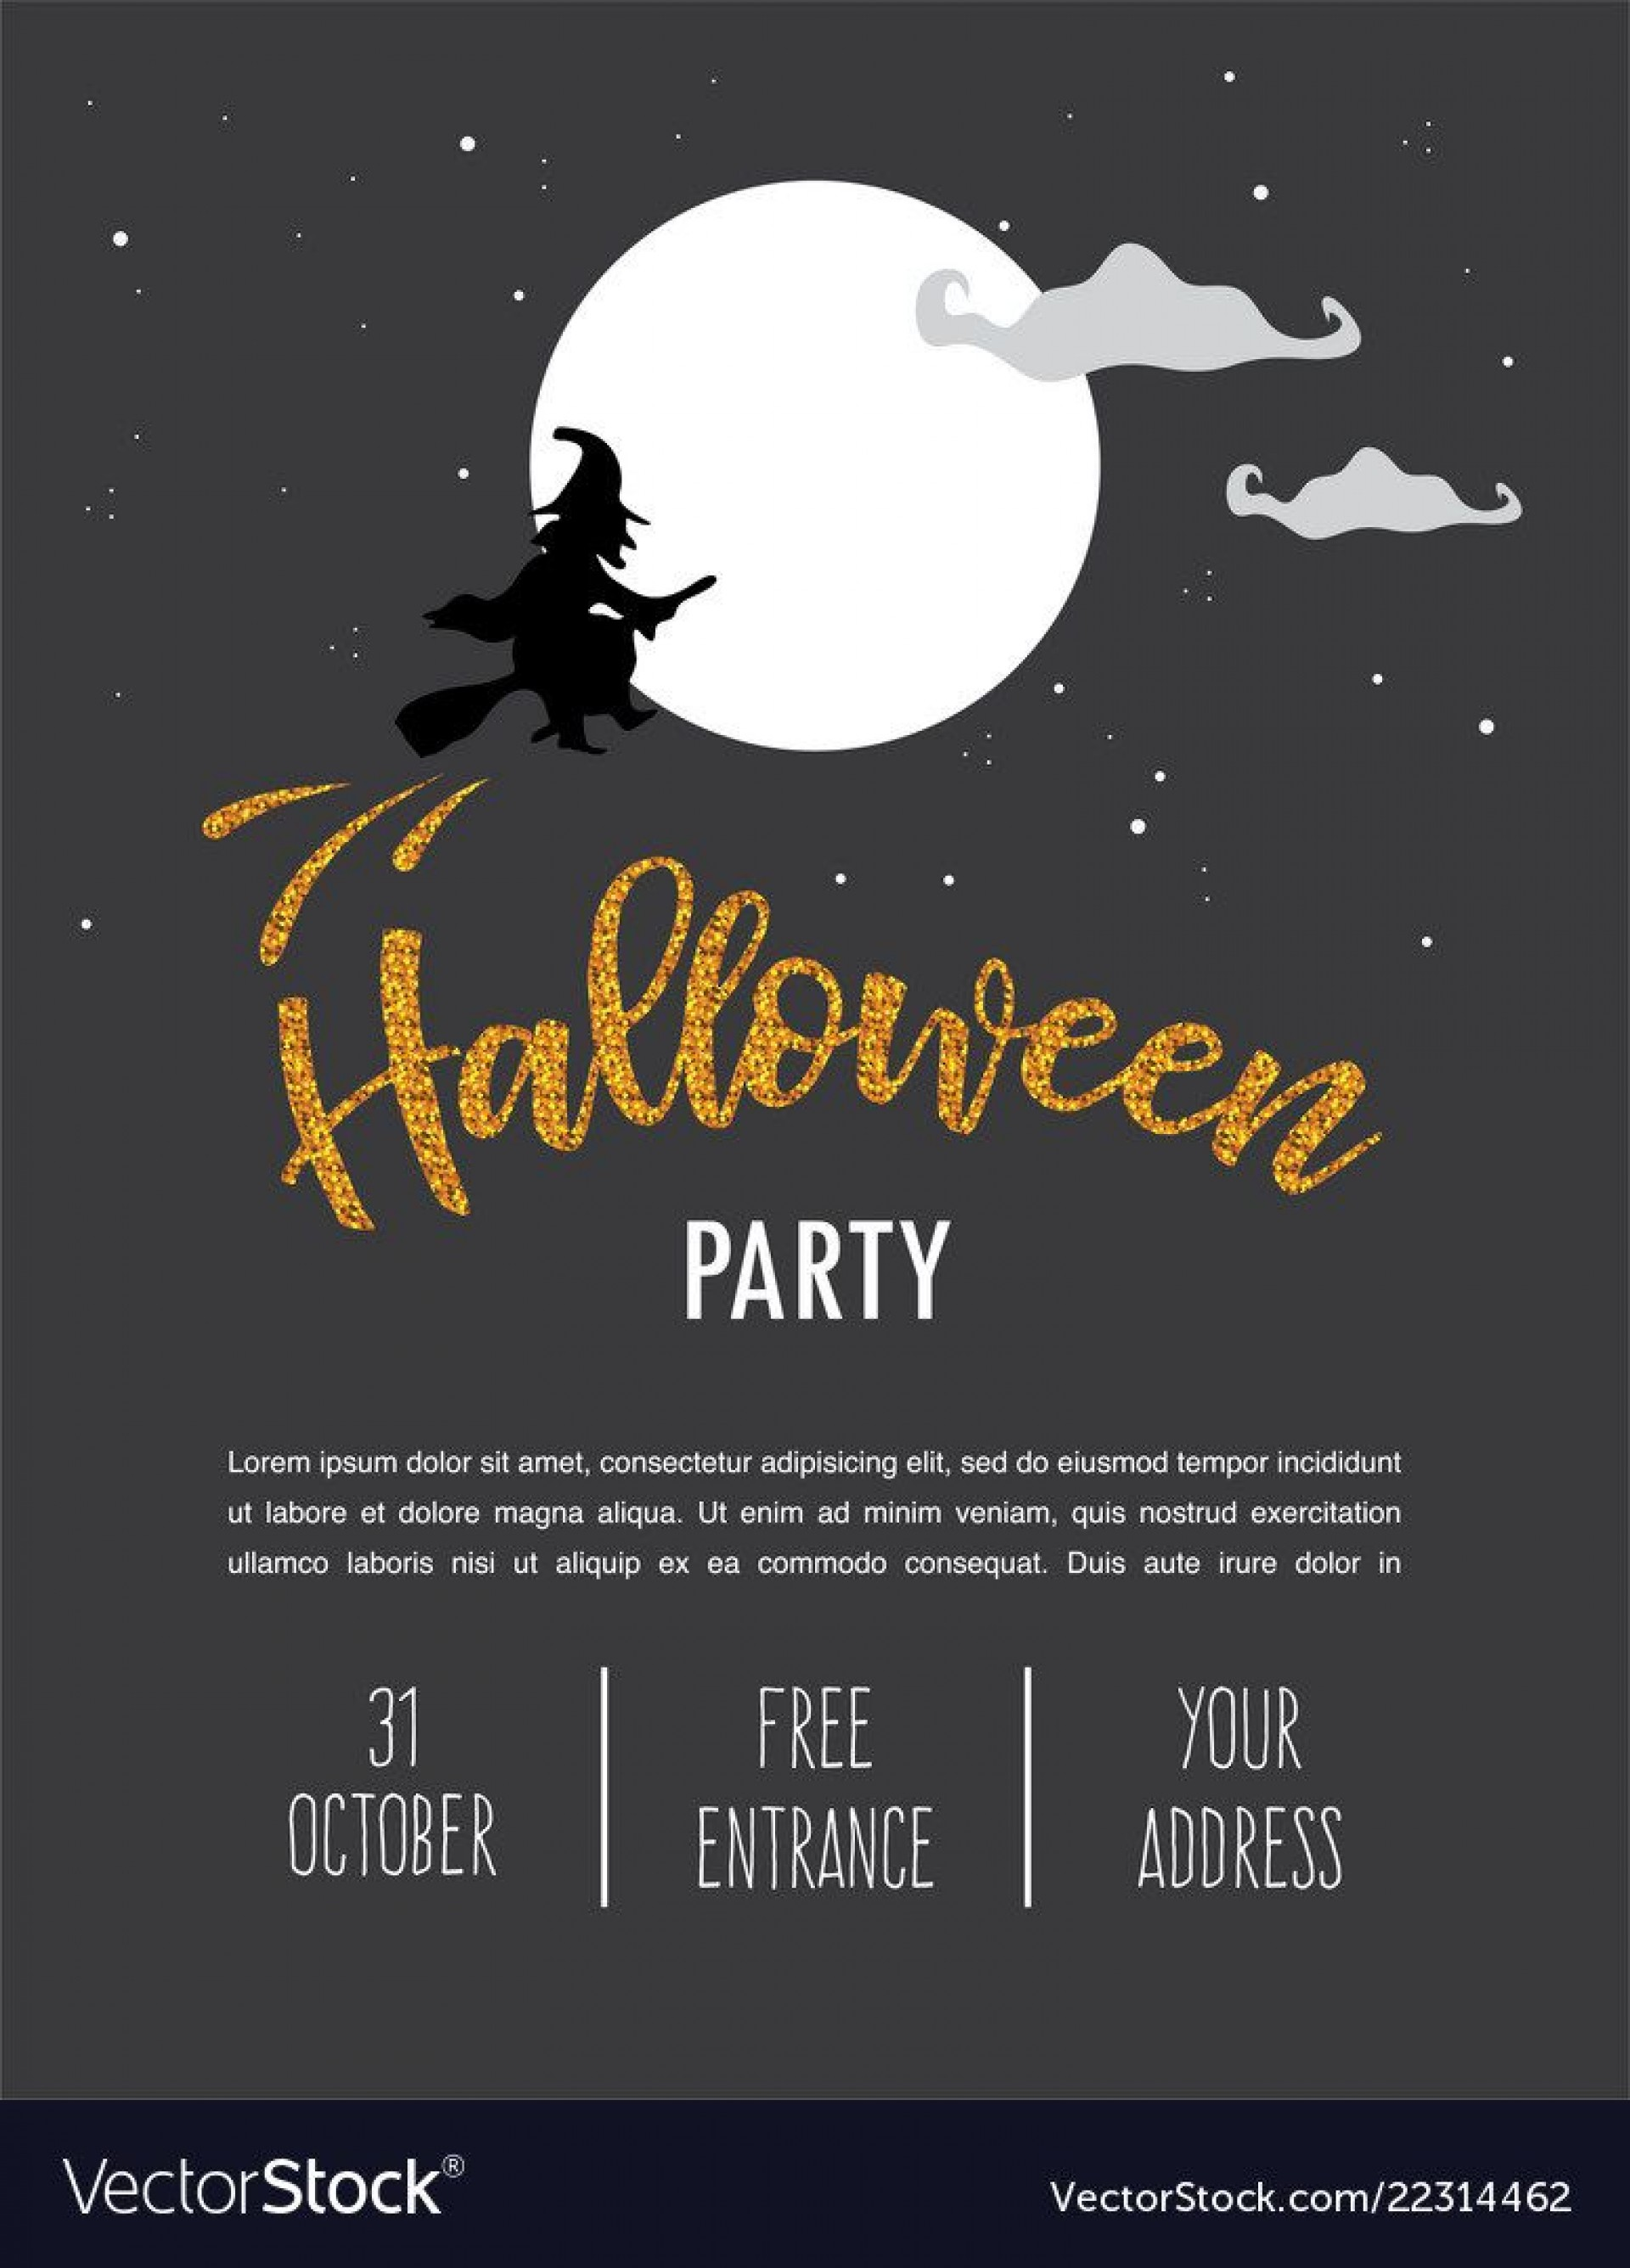 008 Frightening Halloween Party Invitation Template Highest Clarity  Templates Scary Spooky1920